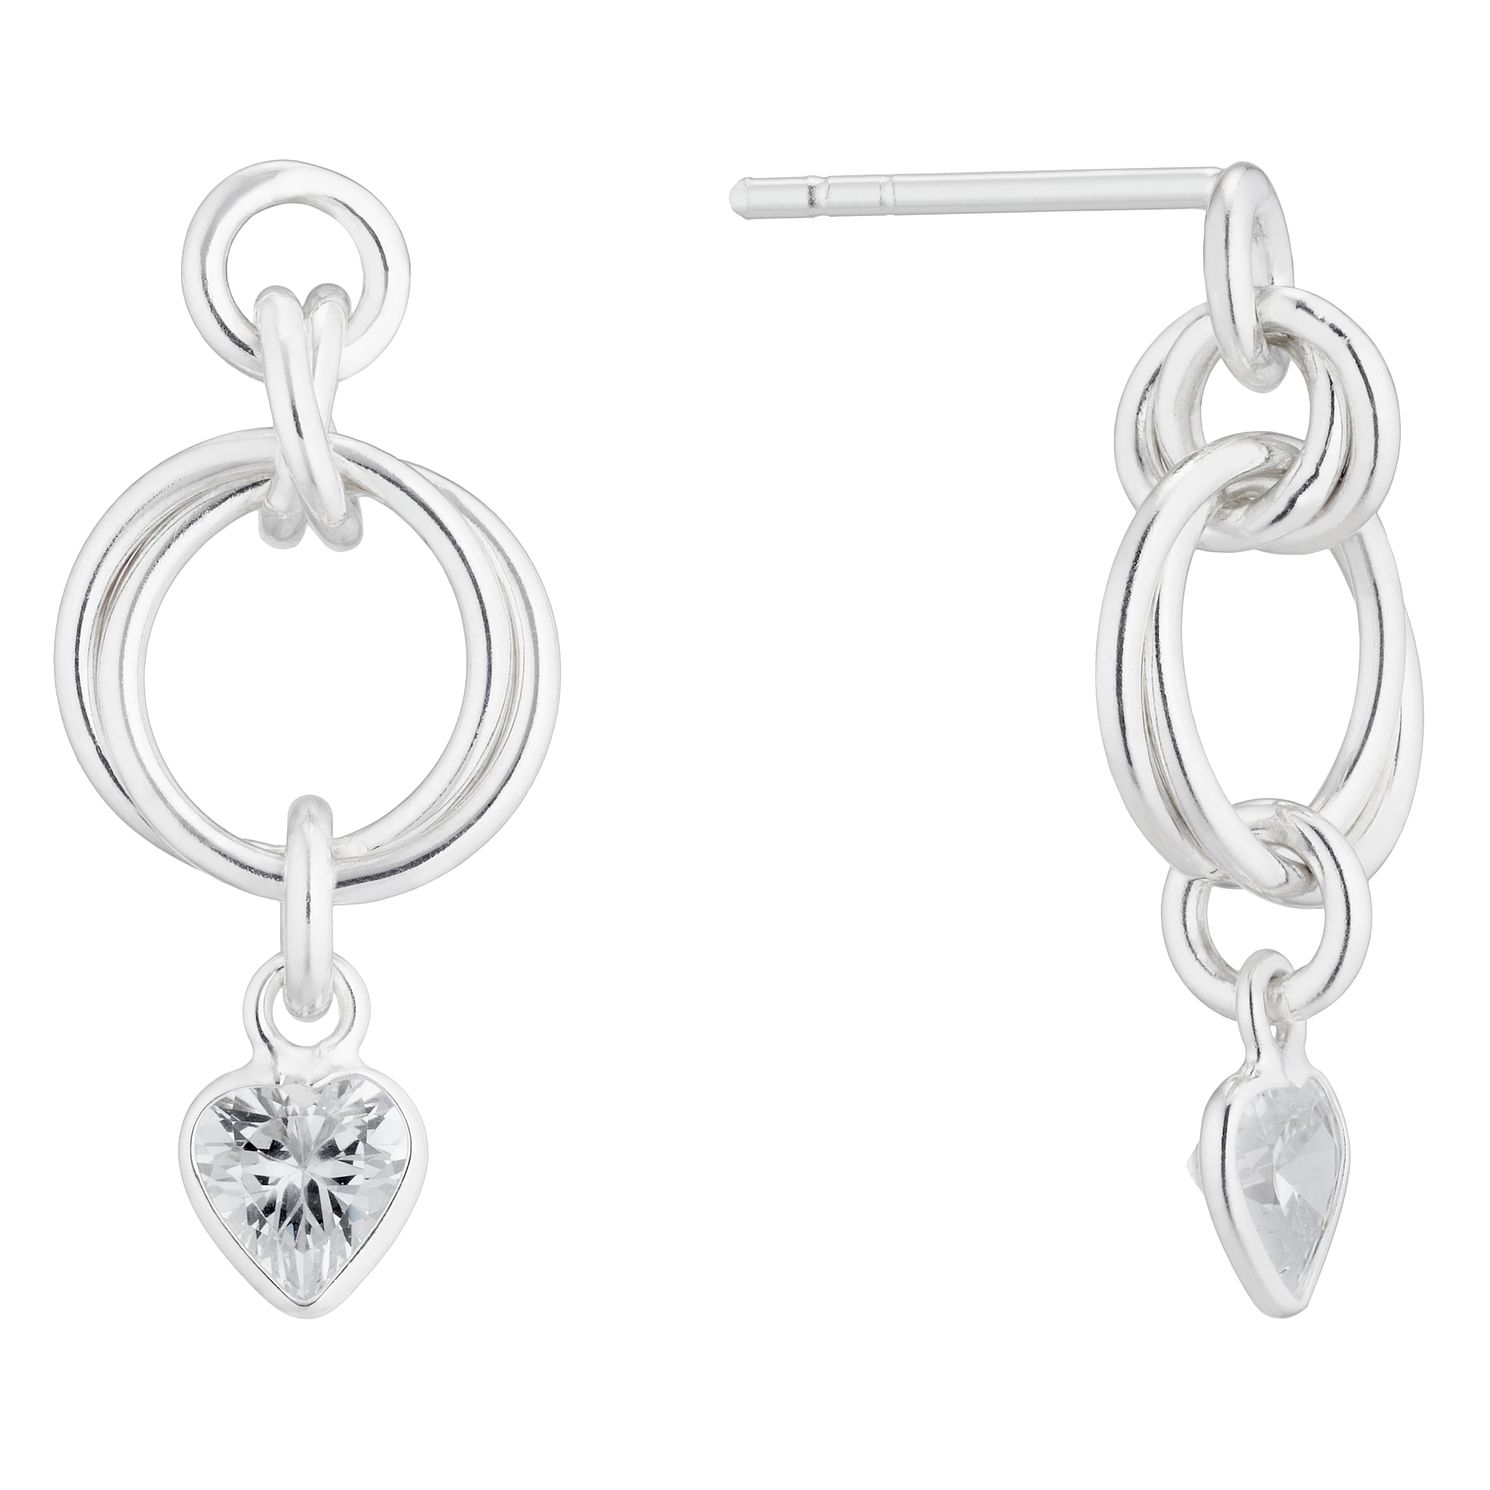 Silver Cubic Zirconia Heart & Knot Drop Earrings - Product number 4842022